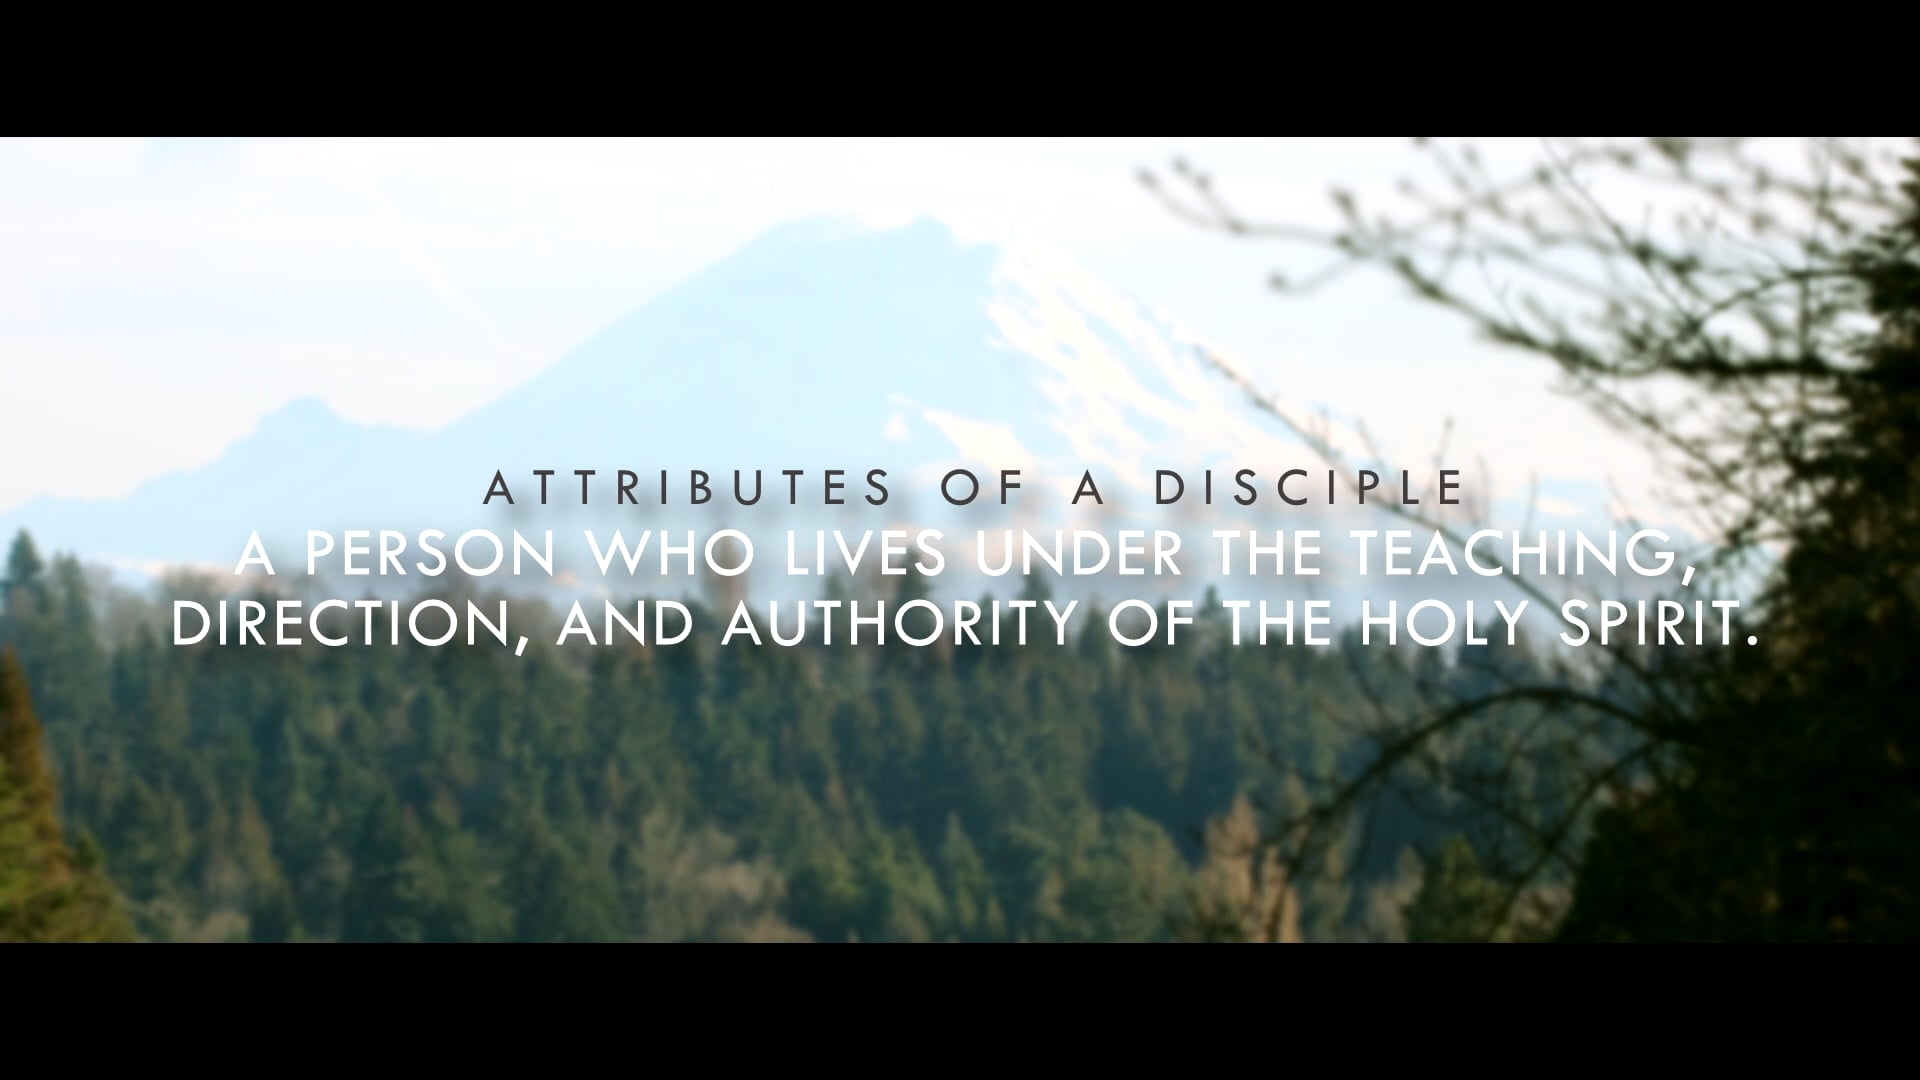 Attributes of a Disciple Part 4 - A person who lives under the teaching, direction, and authority of the Holy Spirit.